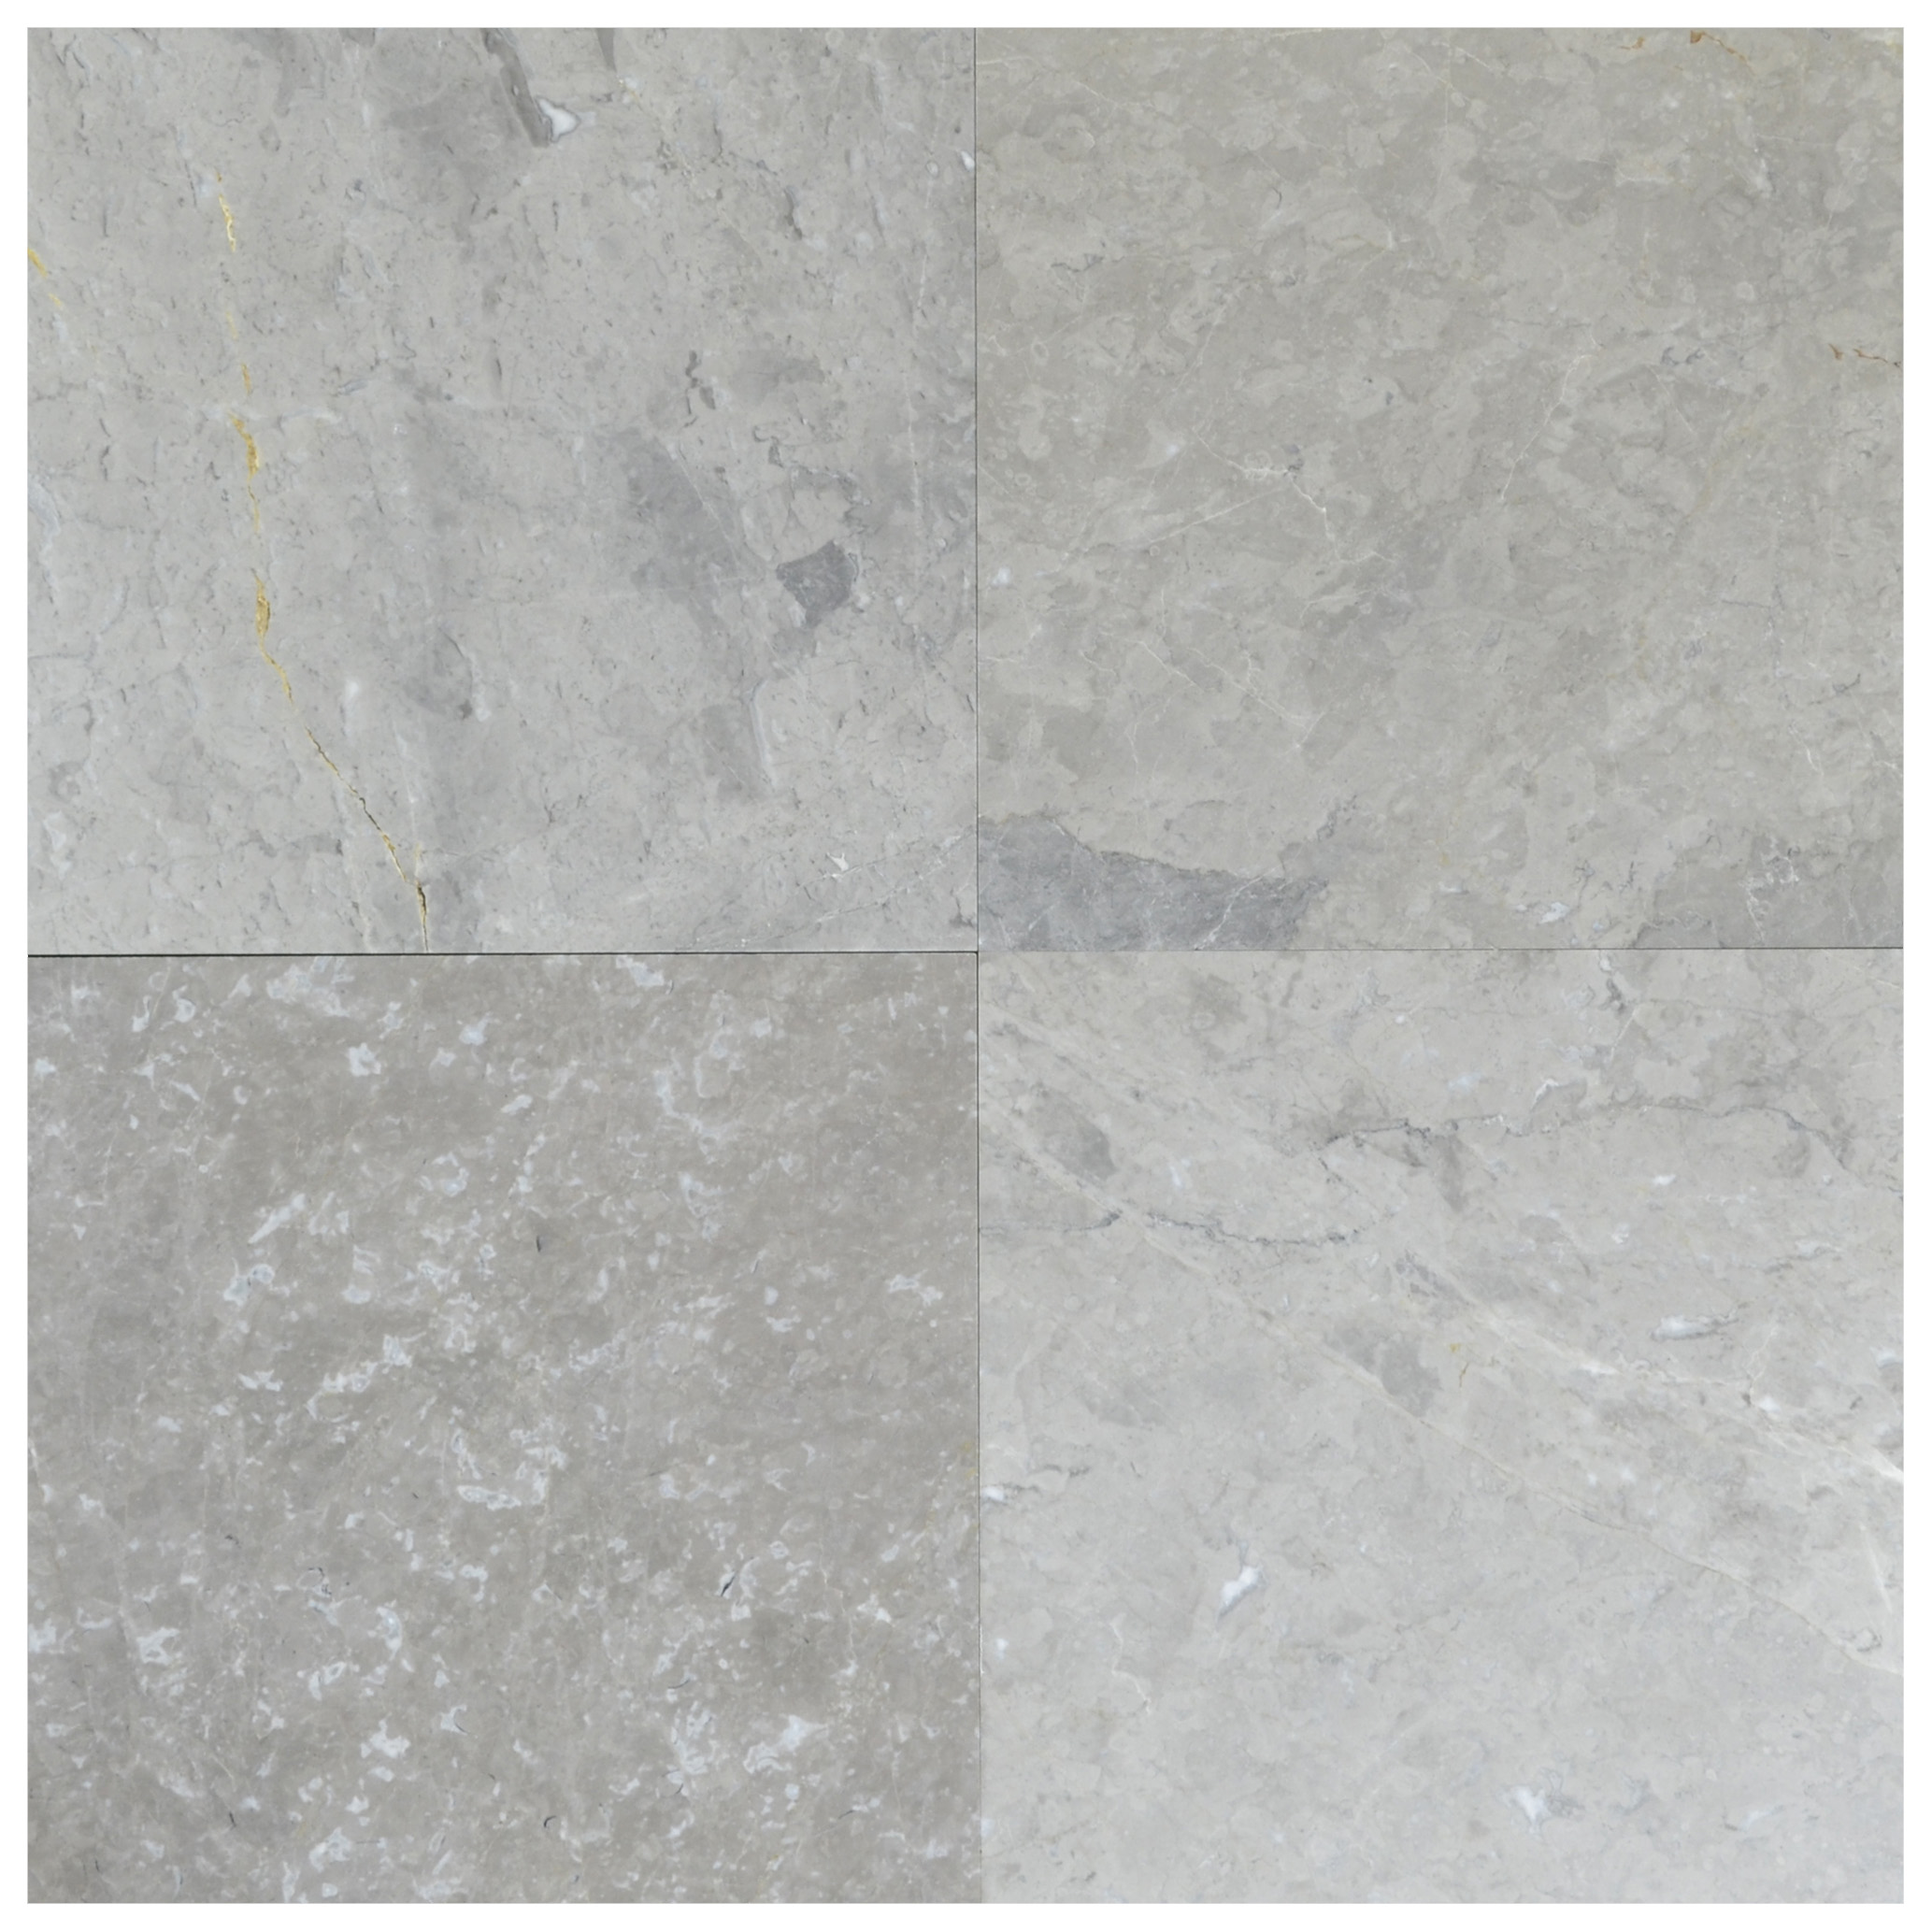 silver belinda polished marble tiles 18x18-marble sale-Atlantic Stone Source